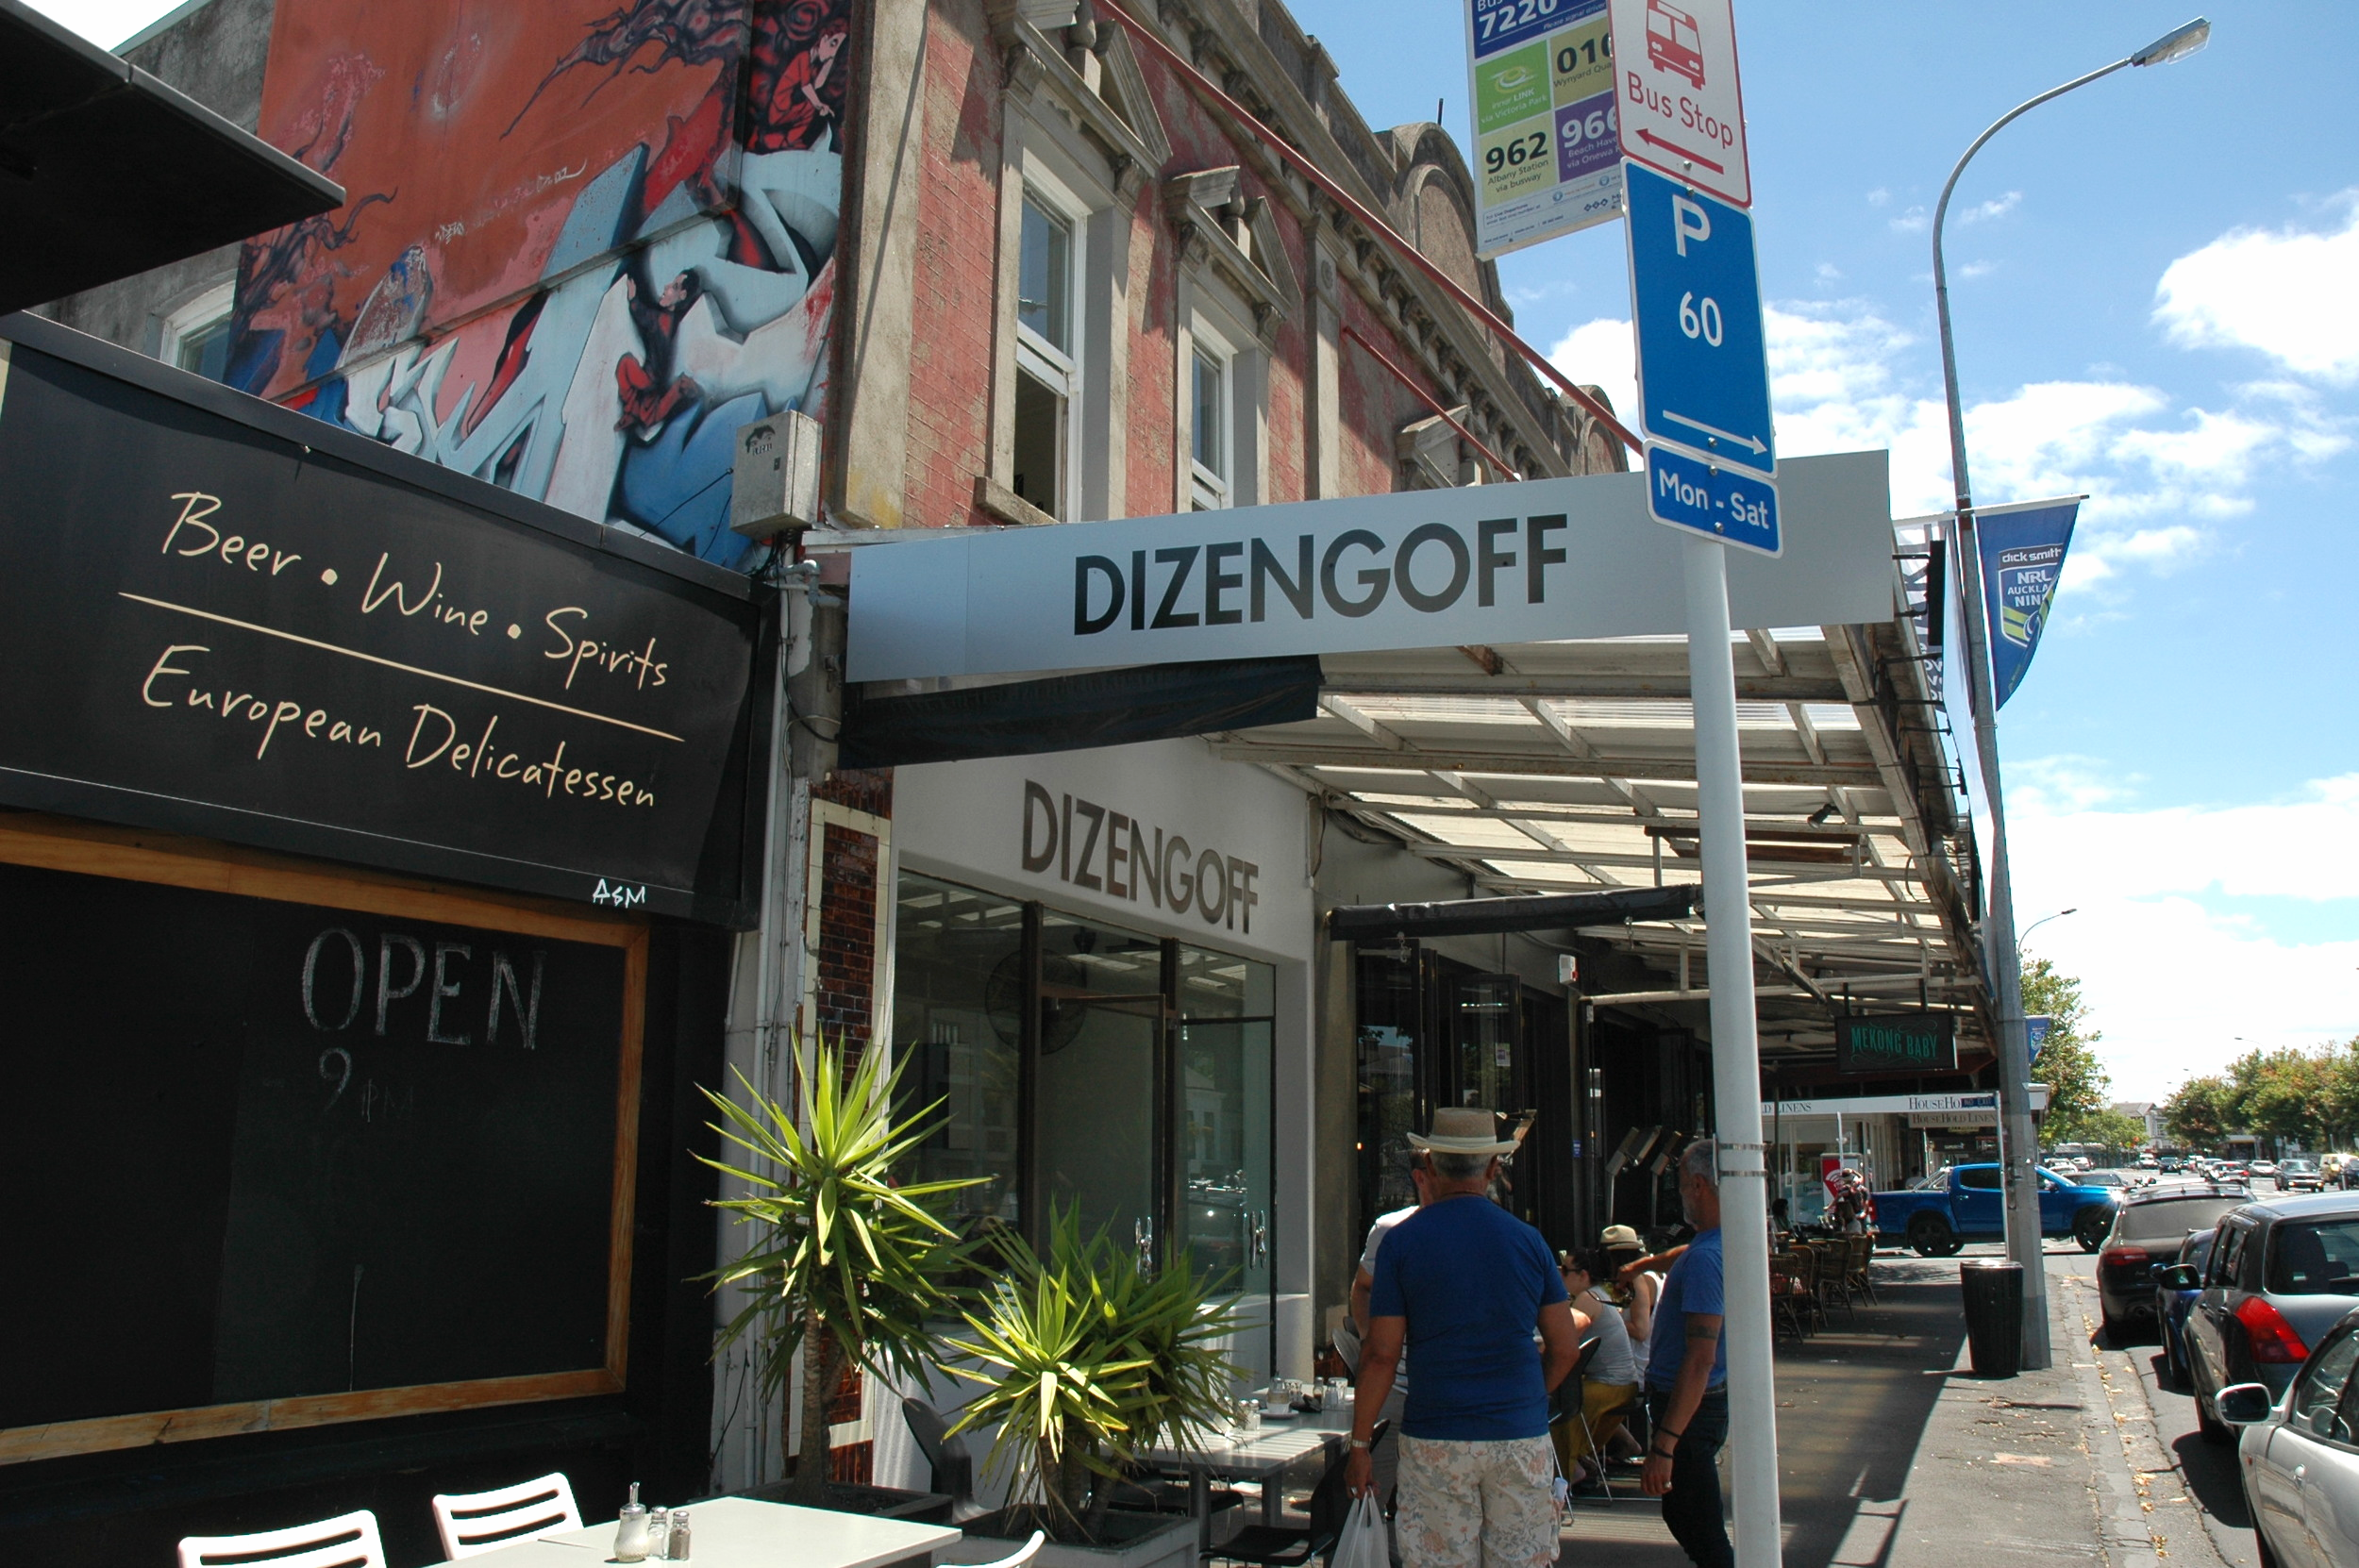 Dizengoff_Aukland_New_Zealand